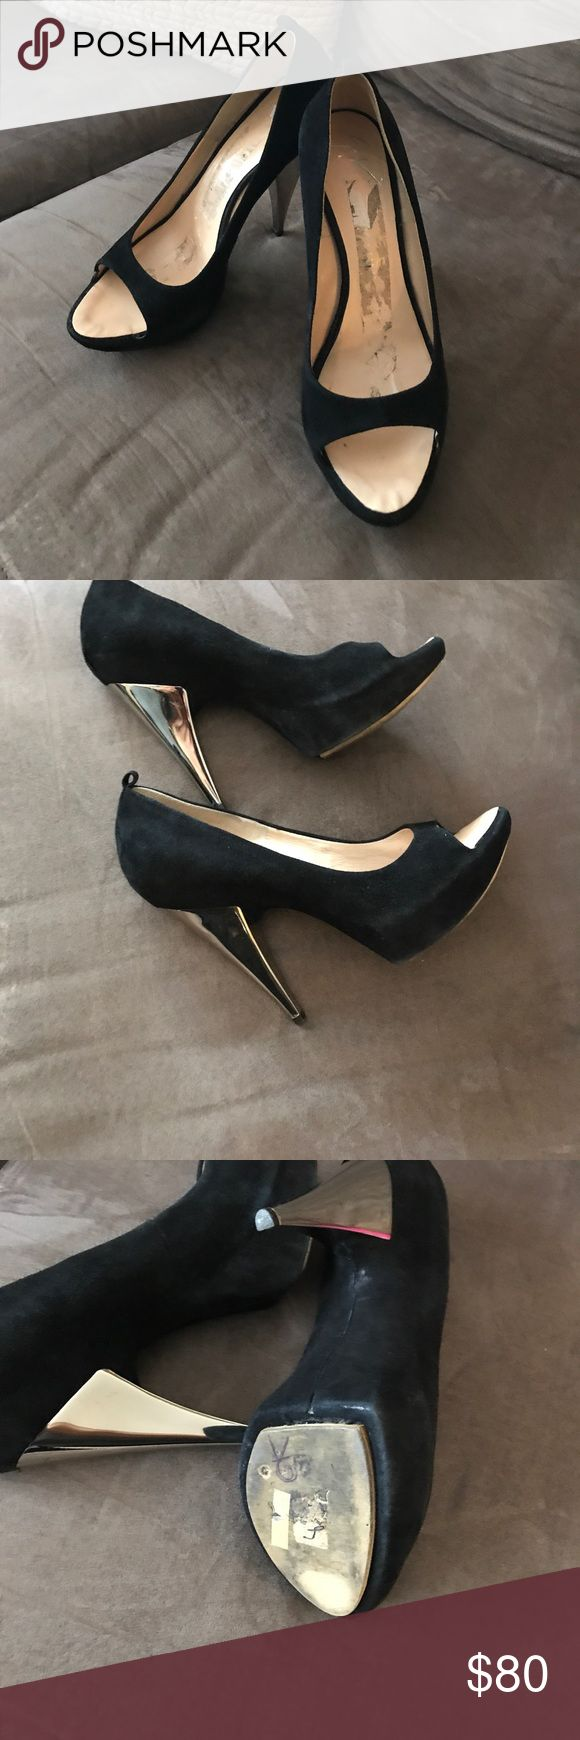 Giuseppe heels 👠 Used good condition the only flaw it's the tape marks inside, that's why they look dirty Giuseppe Zanotti Shoes Heels #giuseppezanottiheelssilver